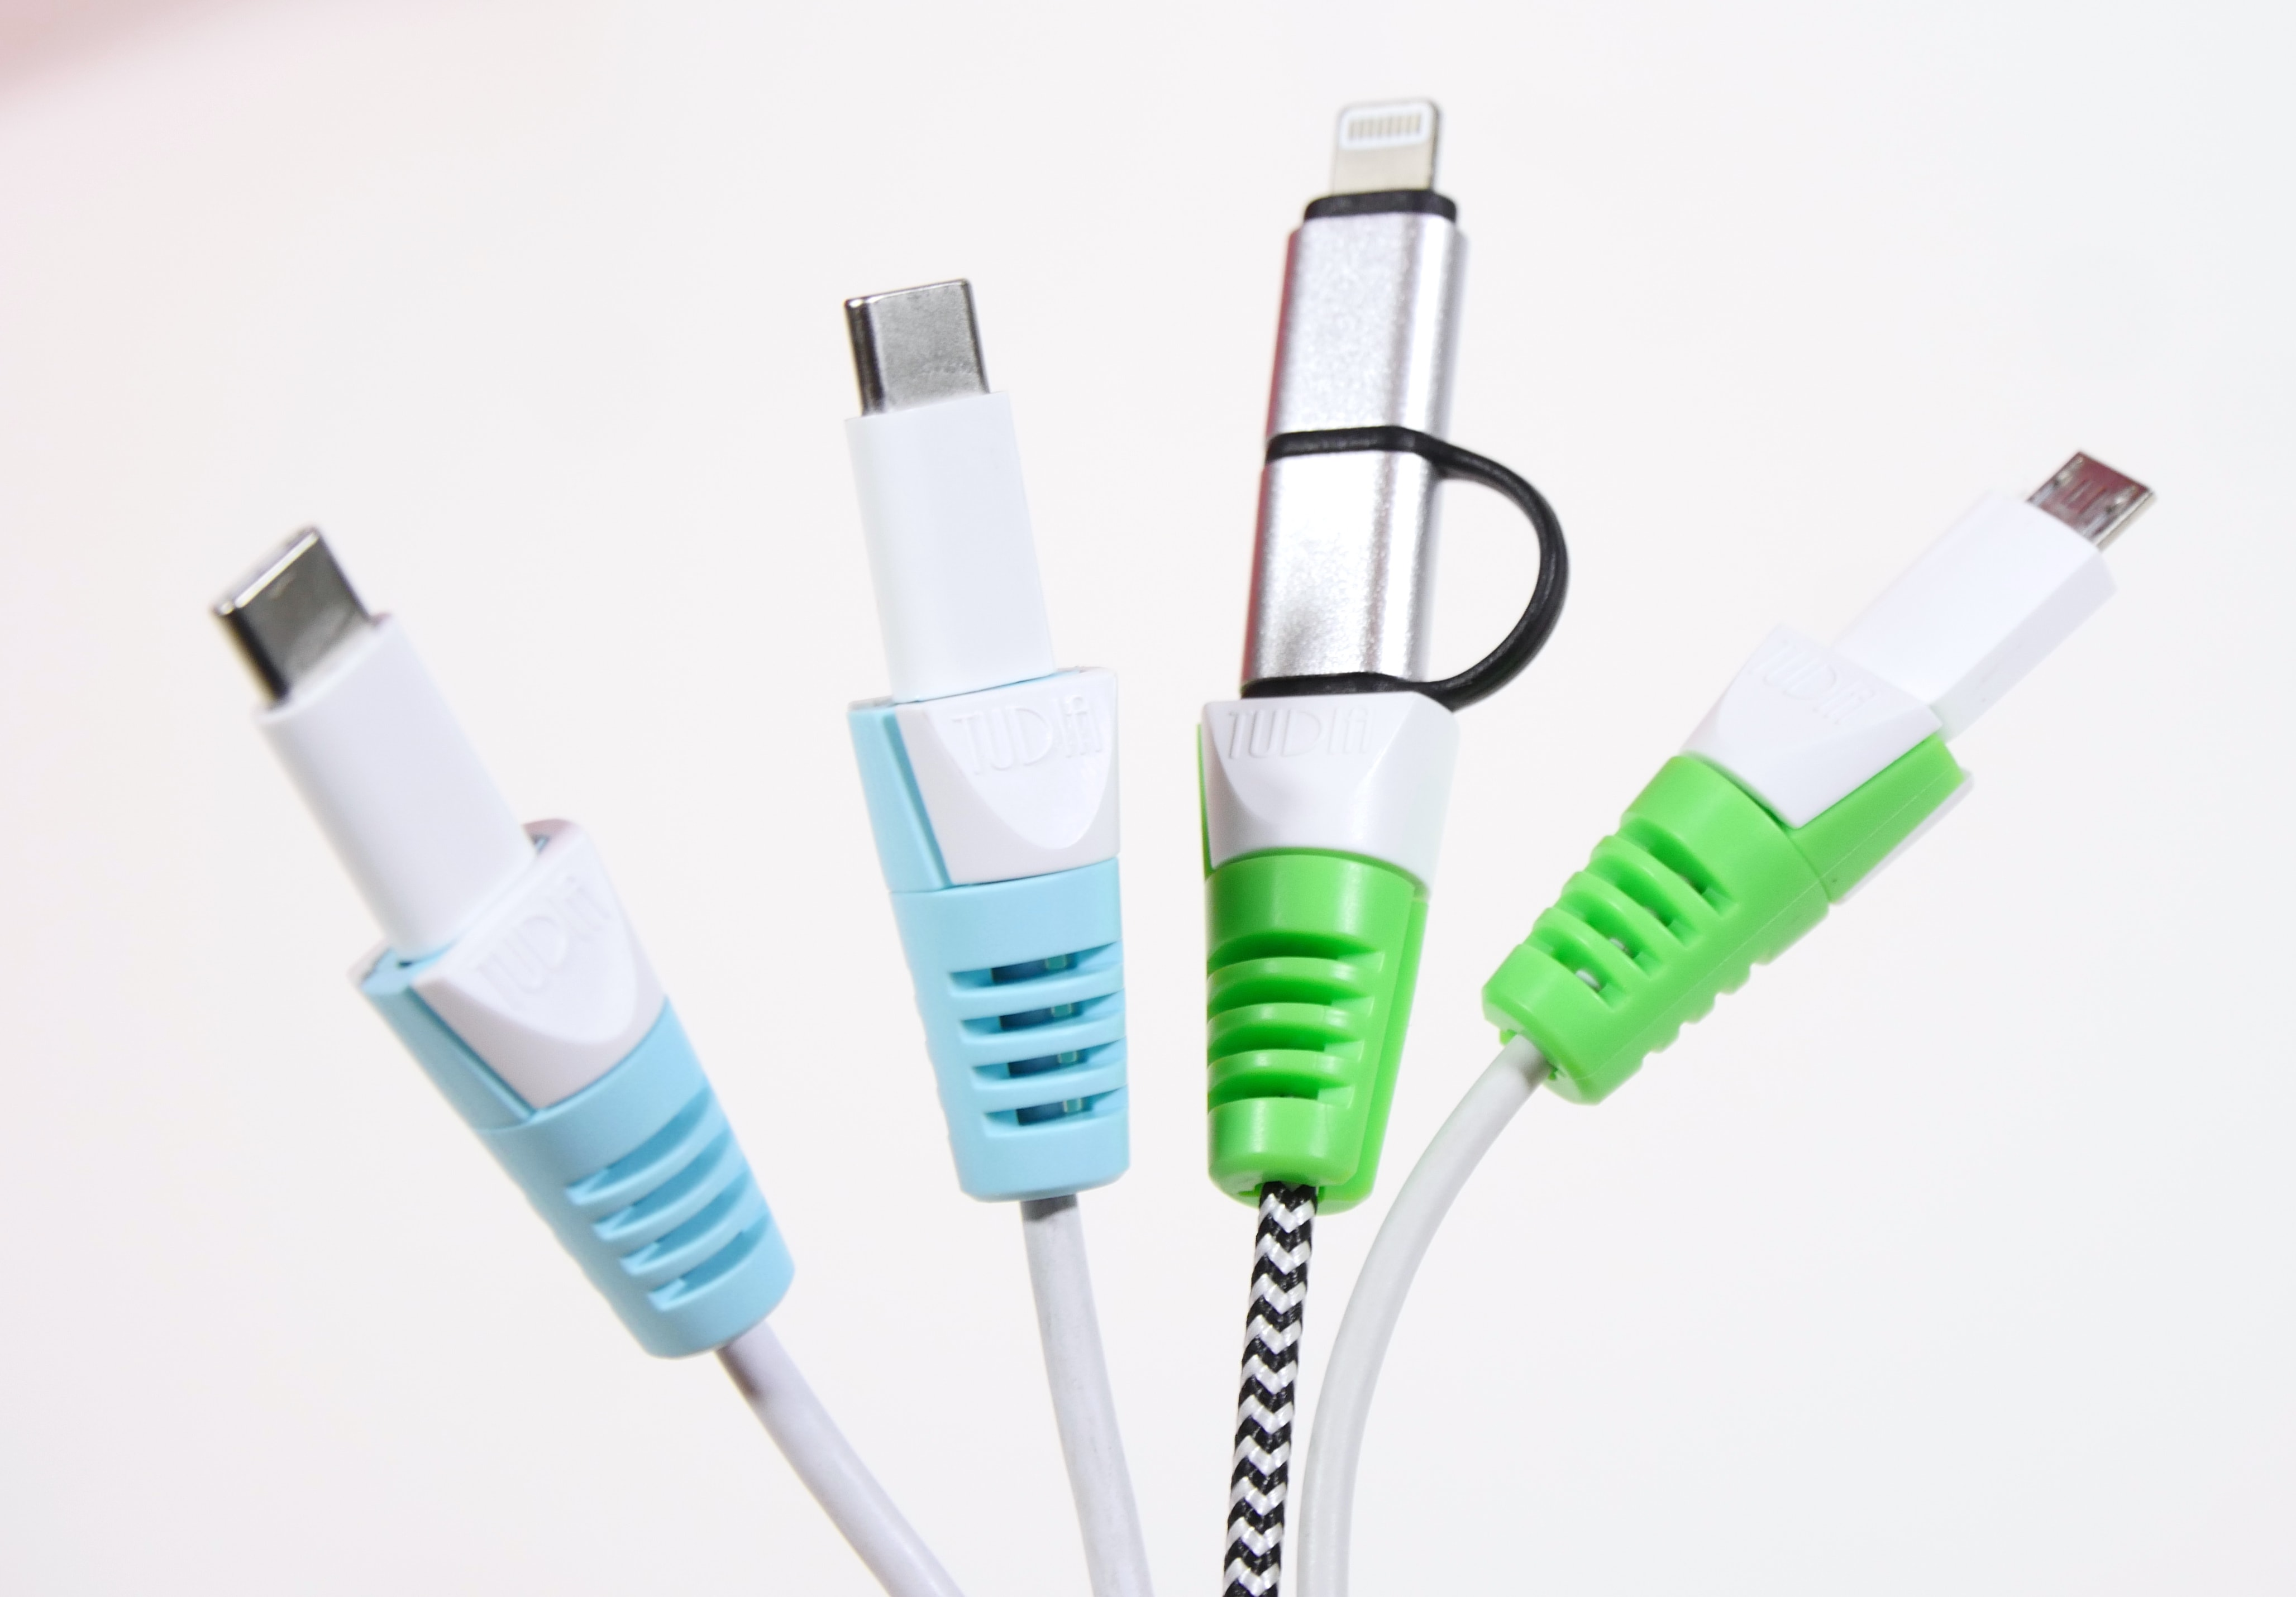 how-to-fix-fraying-cables-4.jpg